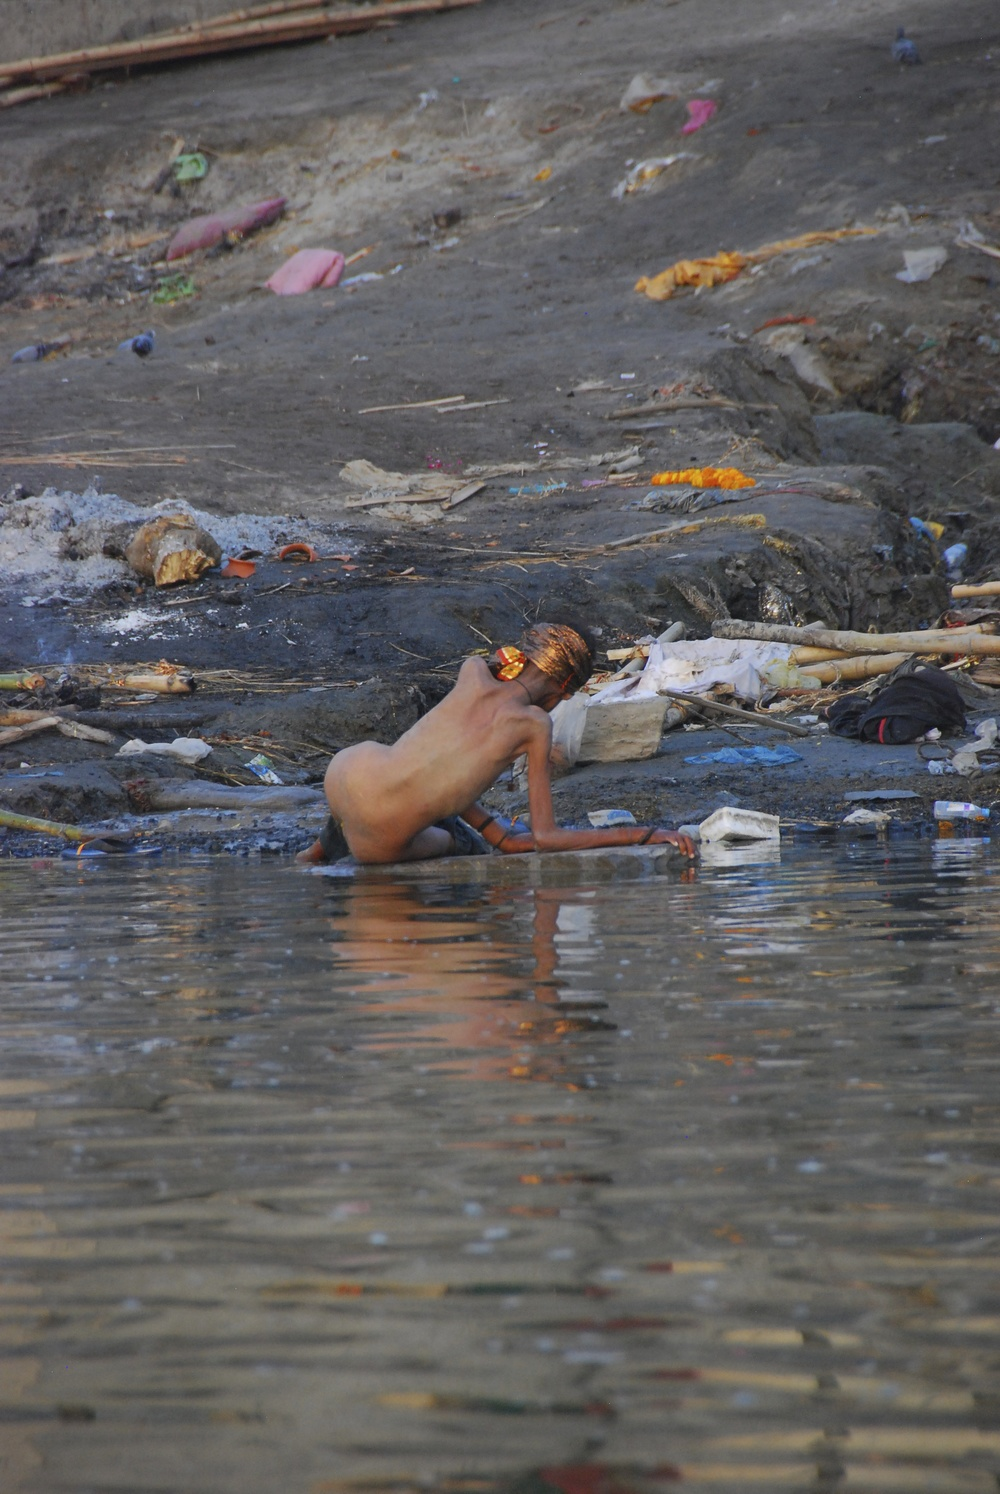 A dream of many Hindus is to die on the banks of Ganga - the path to Nirvana.